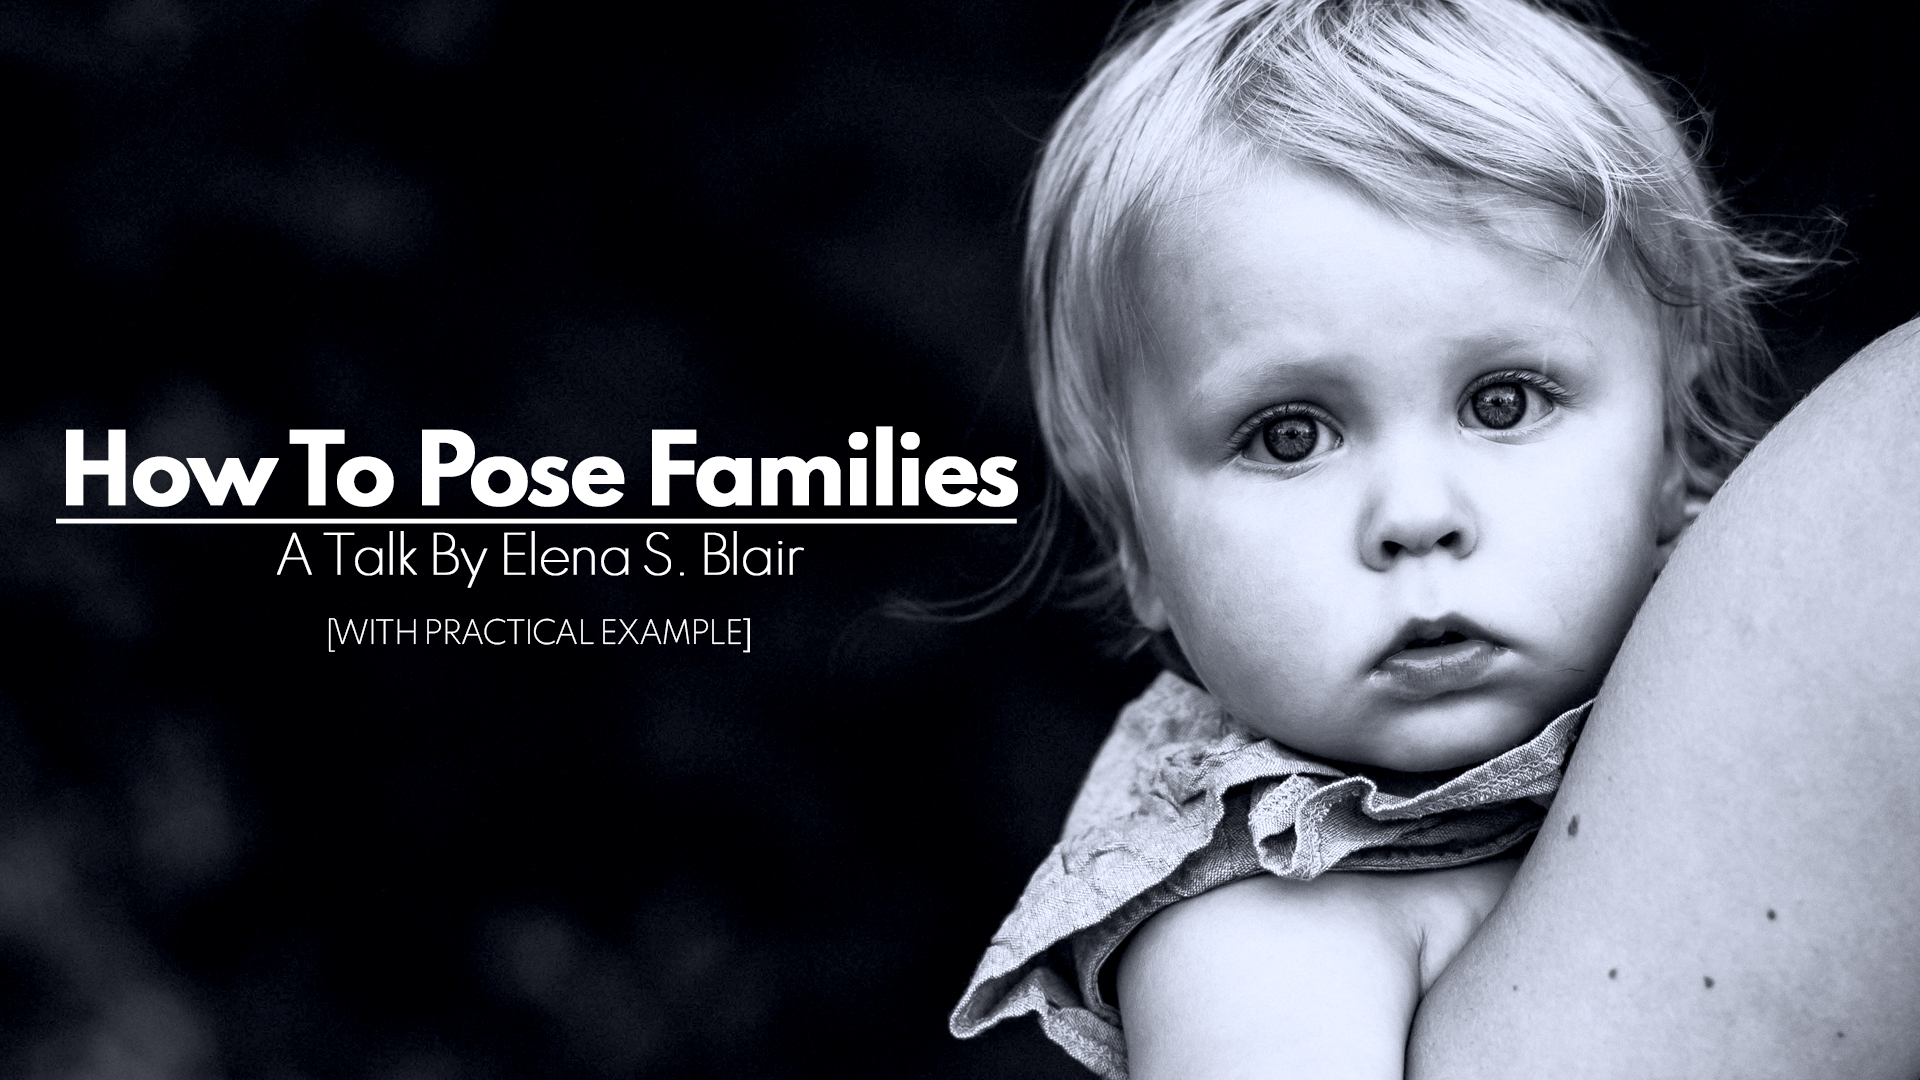 How To Pose Families During A Photoshoot With Practical Example | A Talk Follow By Q&A By Elena S. Blair